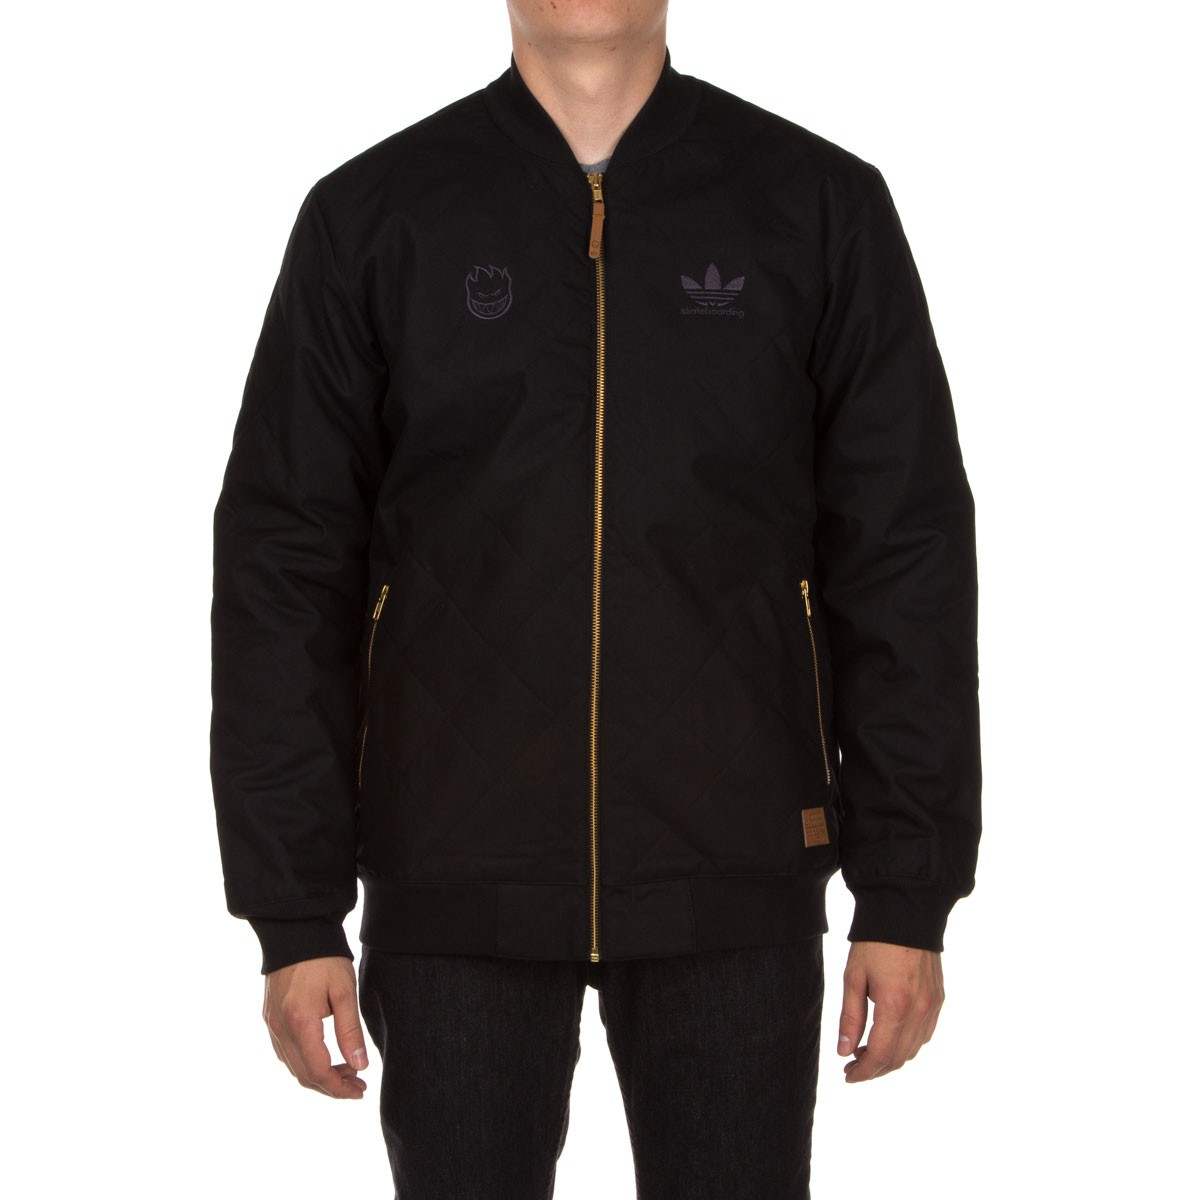 adidas-spitfire-silas-jacket-black-red-carbon-1.1506848205.jpg df2059450d10